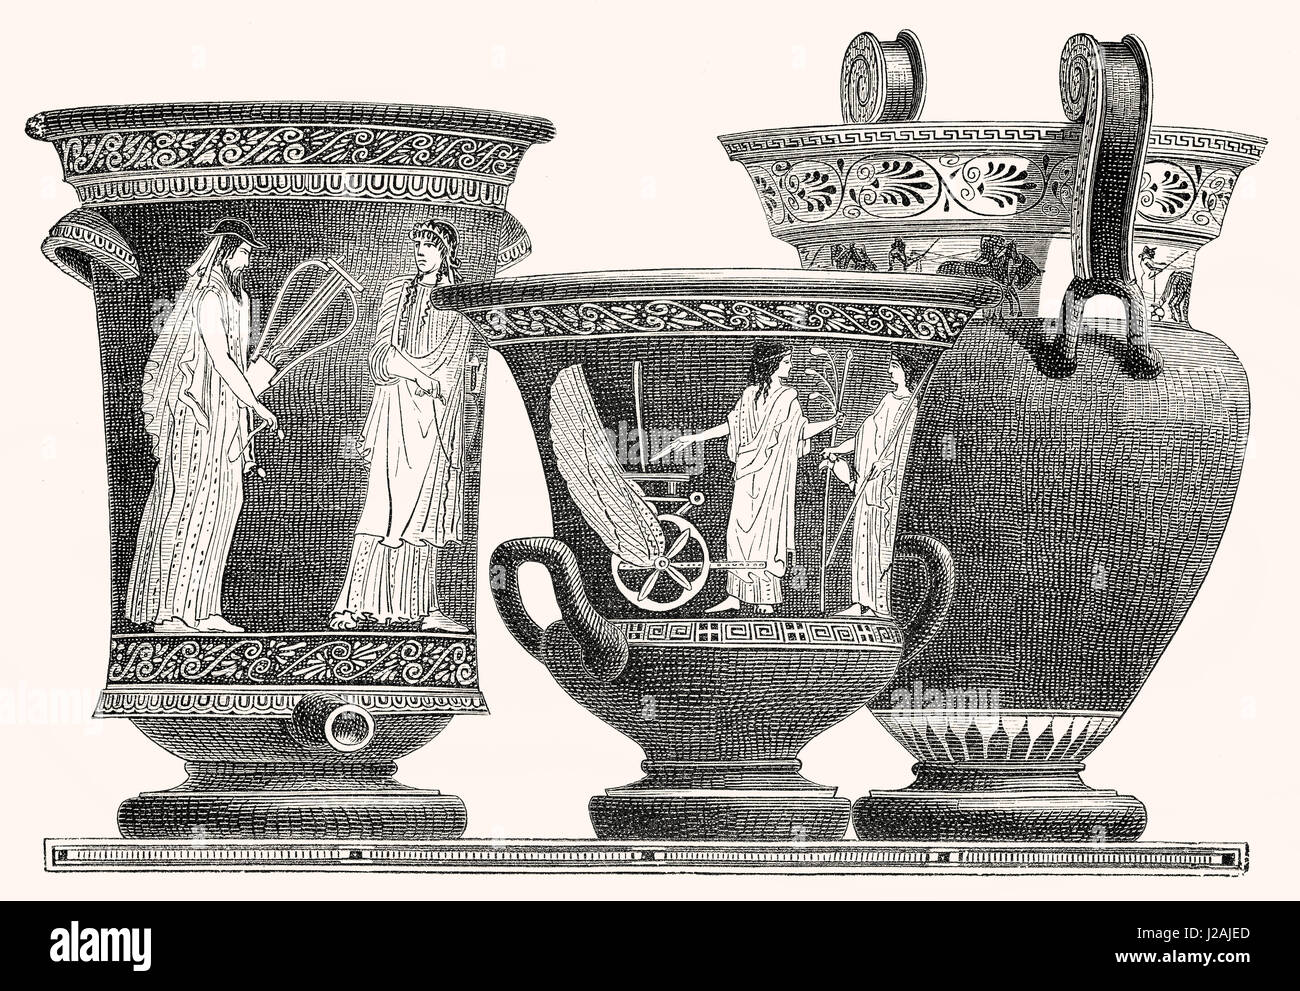 Milk vessels from ancient Greece - Stock Image